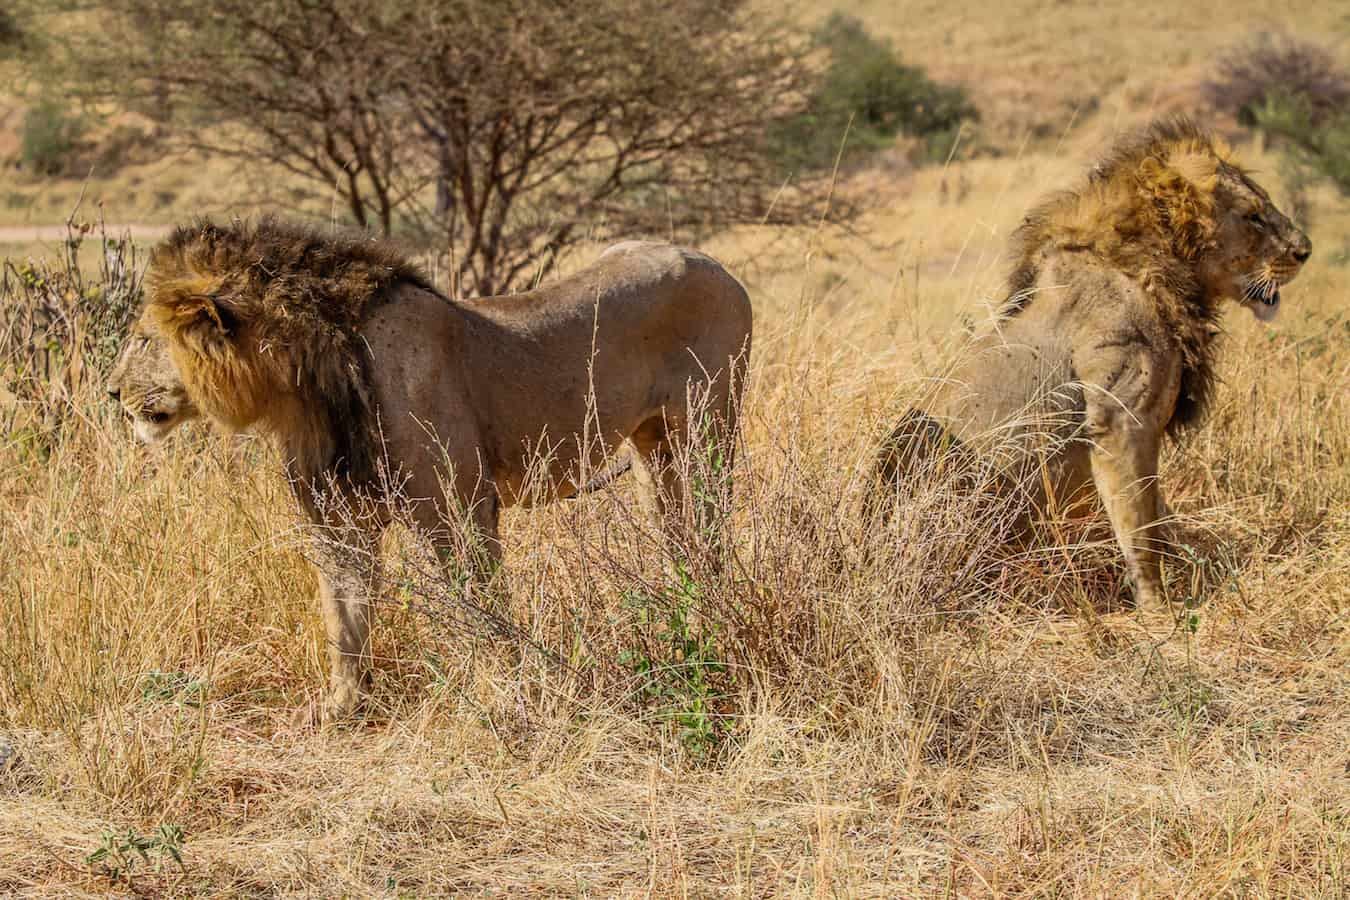 Male Lions in Tangarire National Park, Tanzania